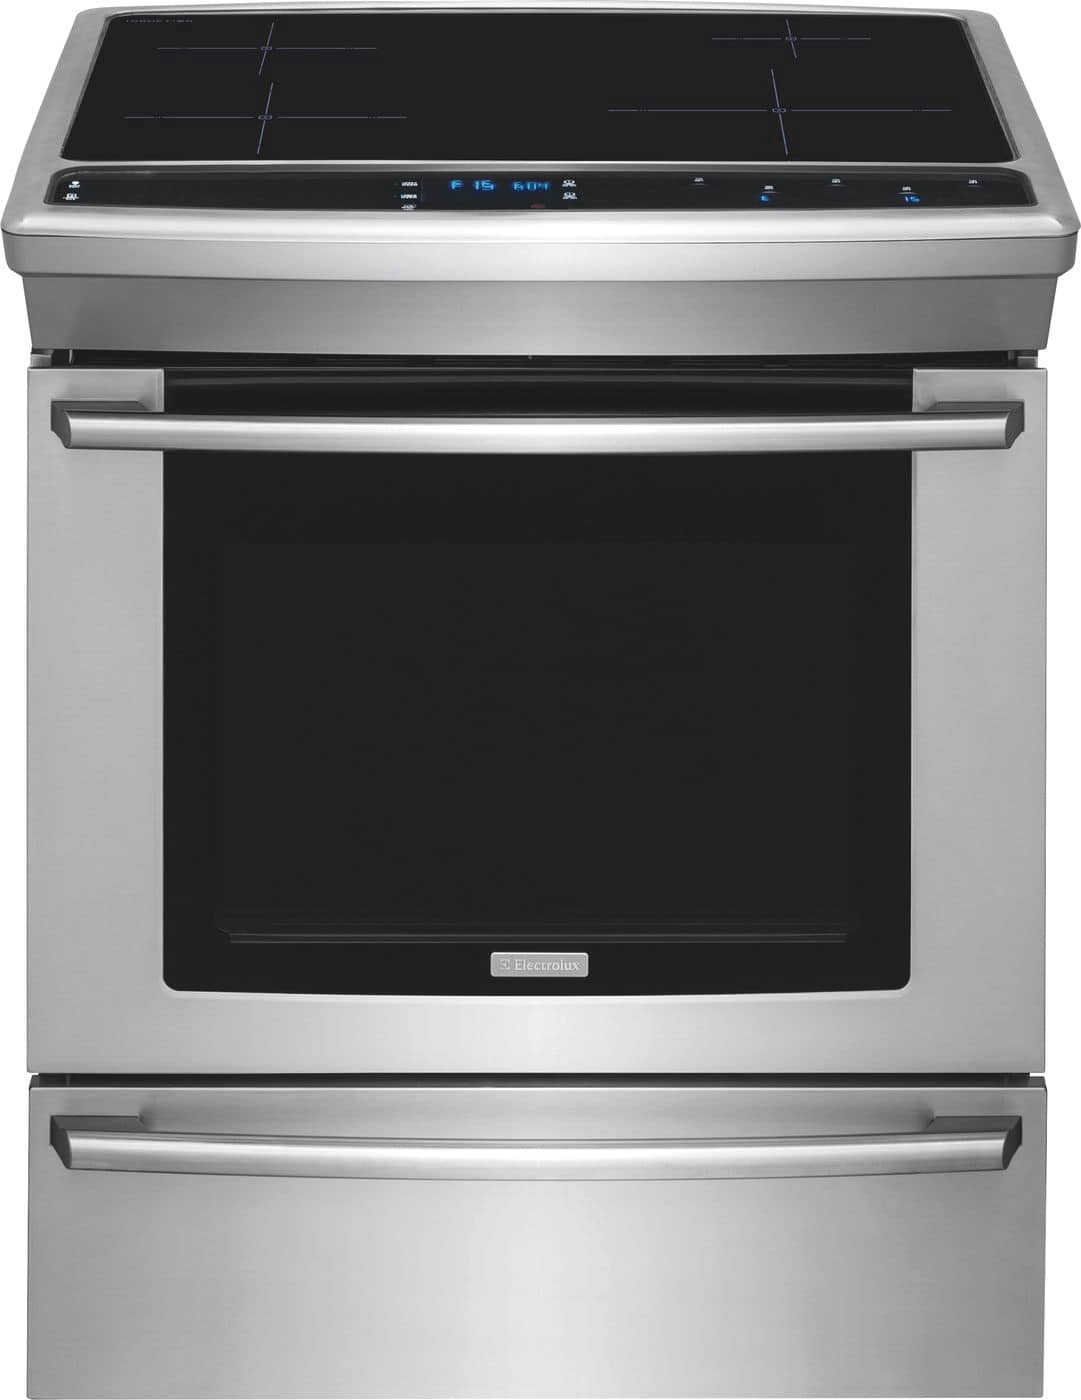 "Electrolux 30"" Induction Built-In Range with Wave-Touch® Controls"